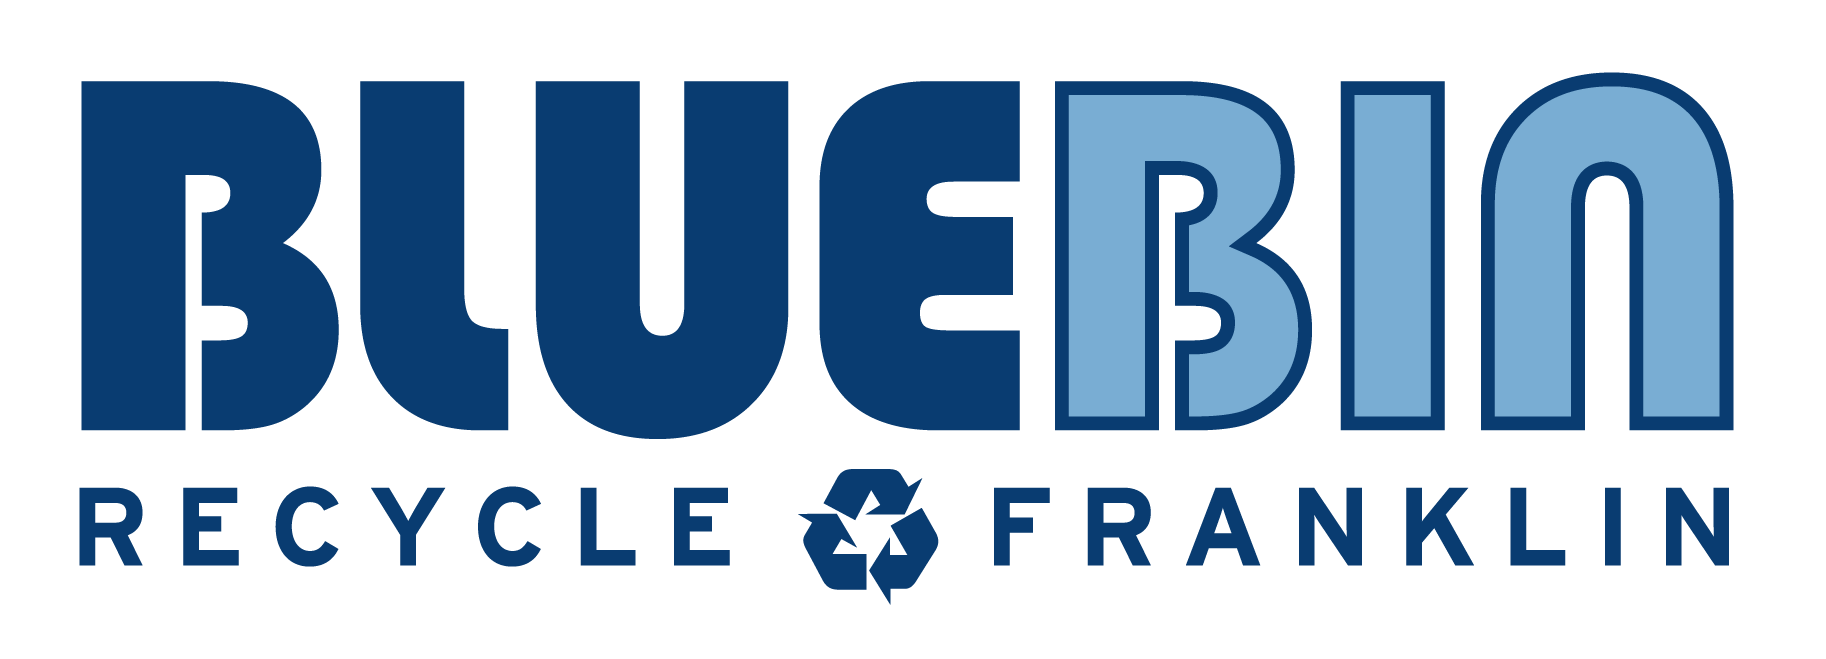 Blue bin logo for recycling